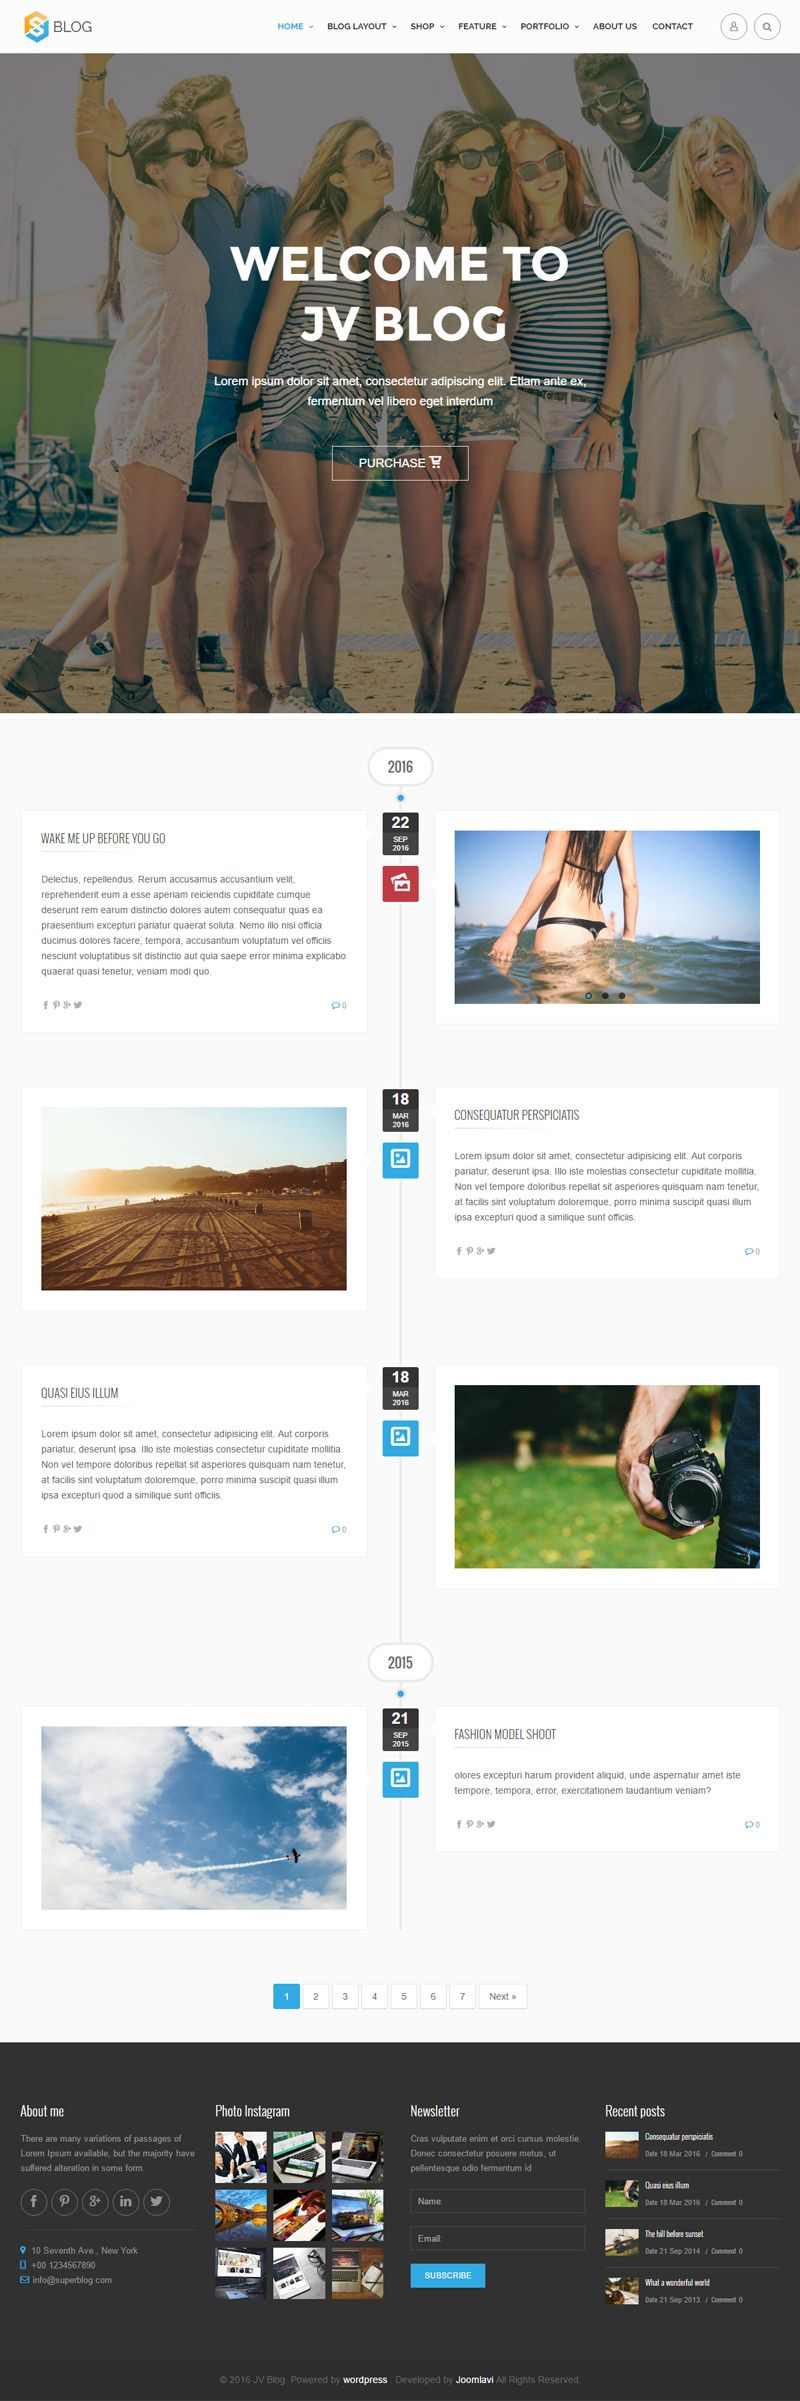 Jv Blog - Responsive WordPress Theme Screenshot 5